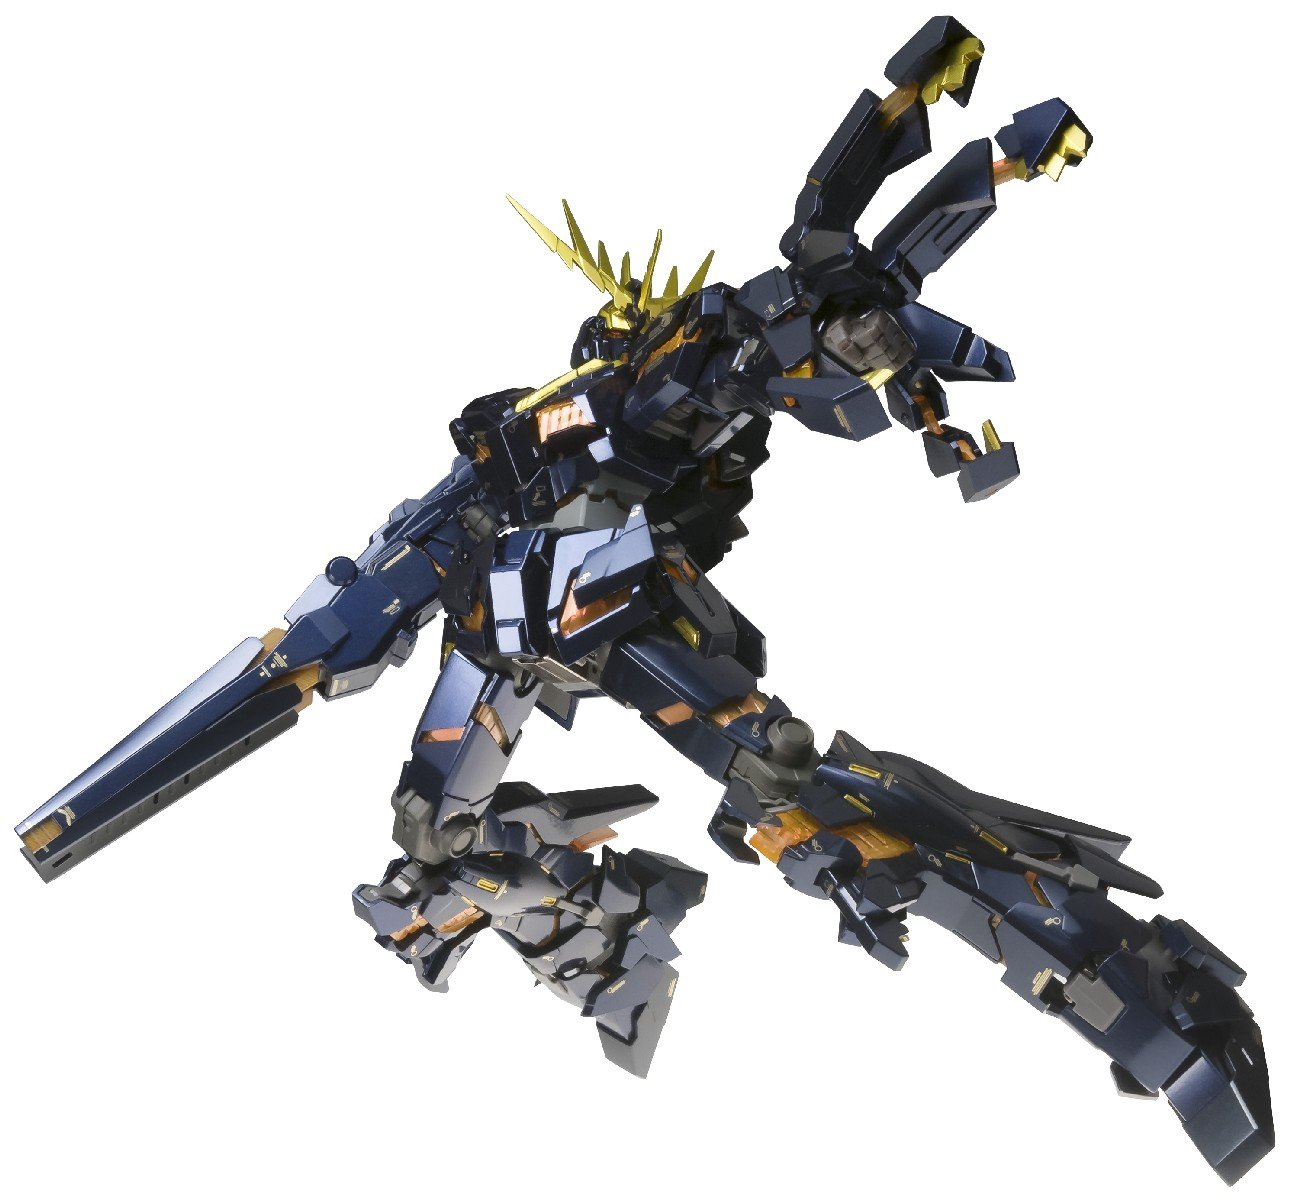 GUNDAM FIX FIGURATION METAL COMPOSITE RX-0ユニコーンガンダム2号機 バンシィ B00E8ZJLW6